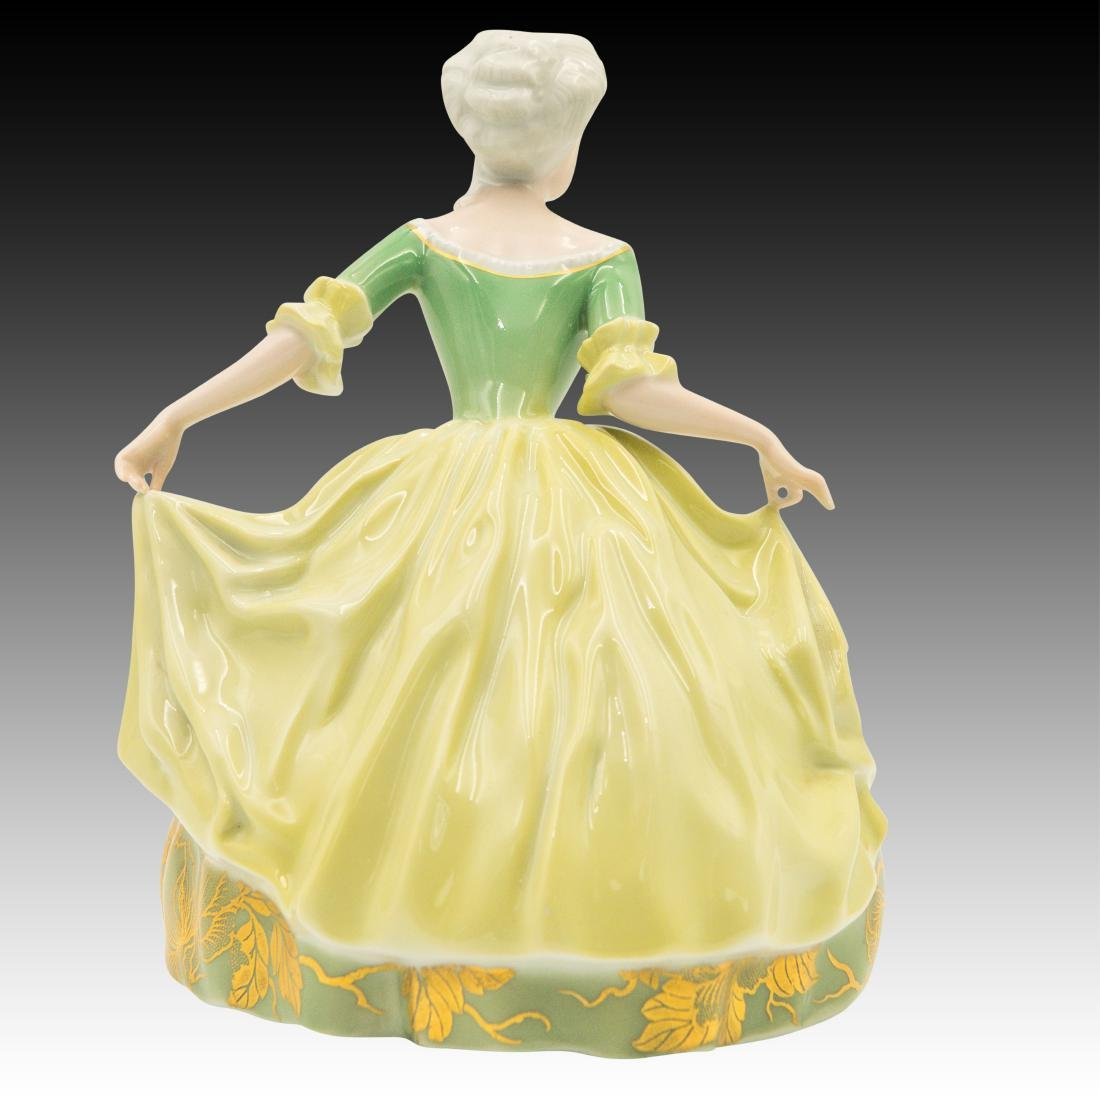 Rosenthal Rococo Dancer in Gold Green Dress - 3